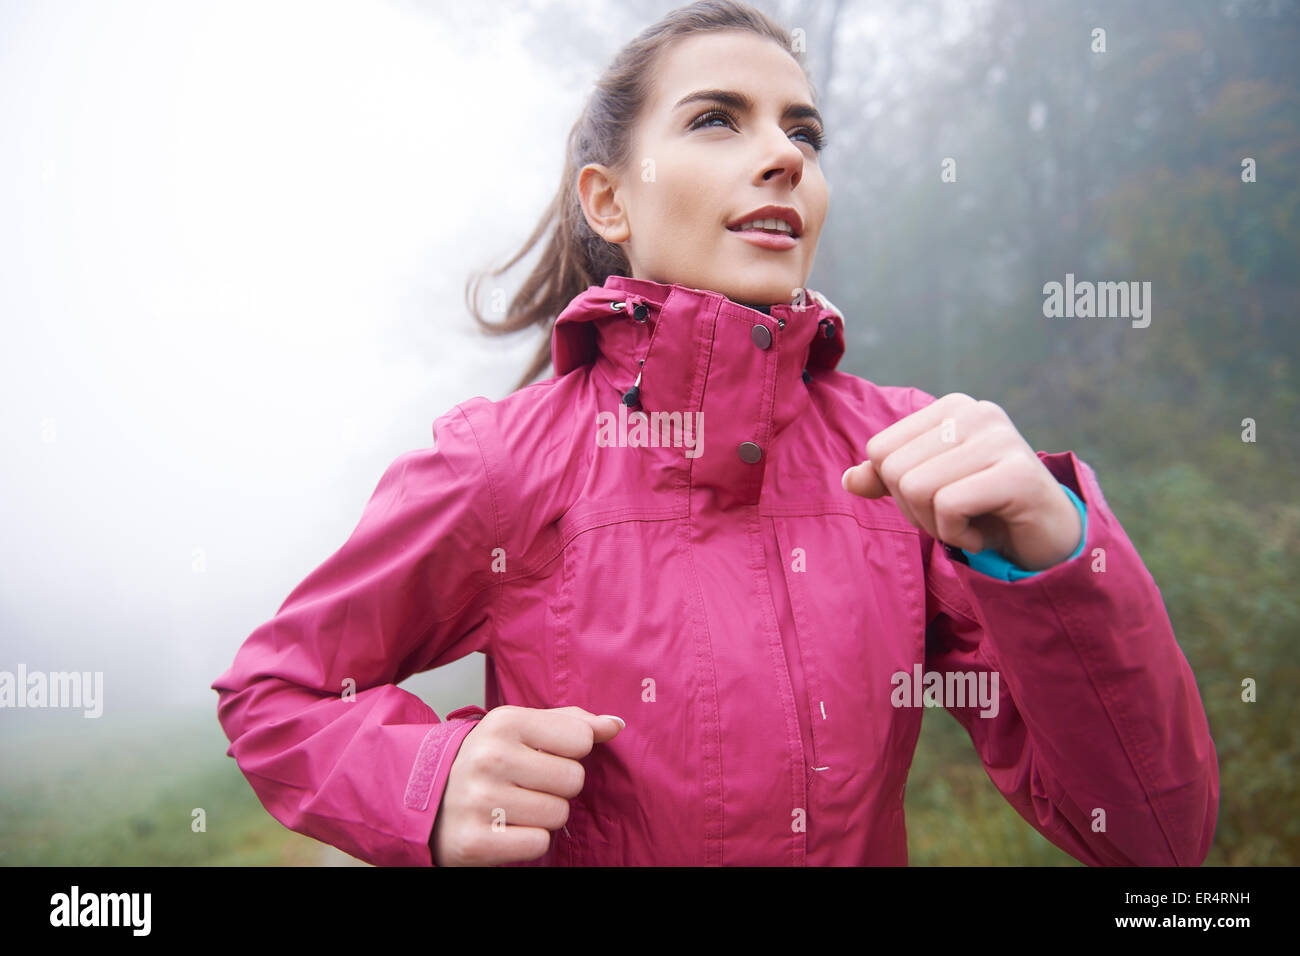 Getting fit even in bad weather. Debica, Poland - Stock Image